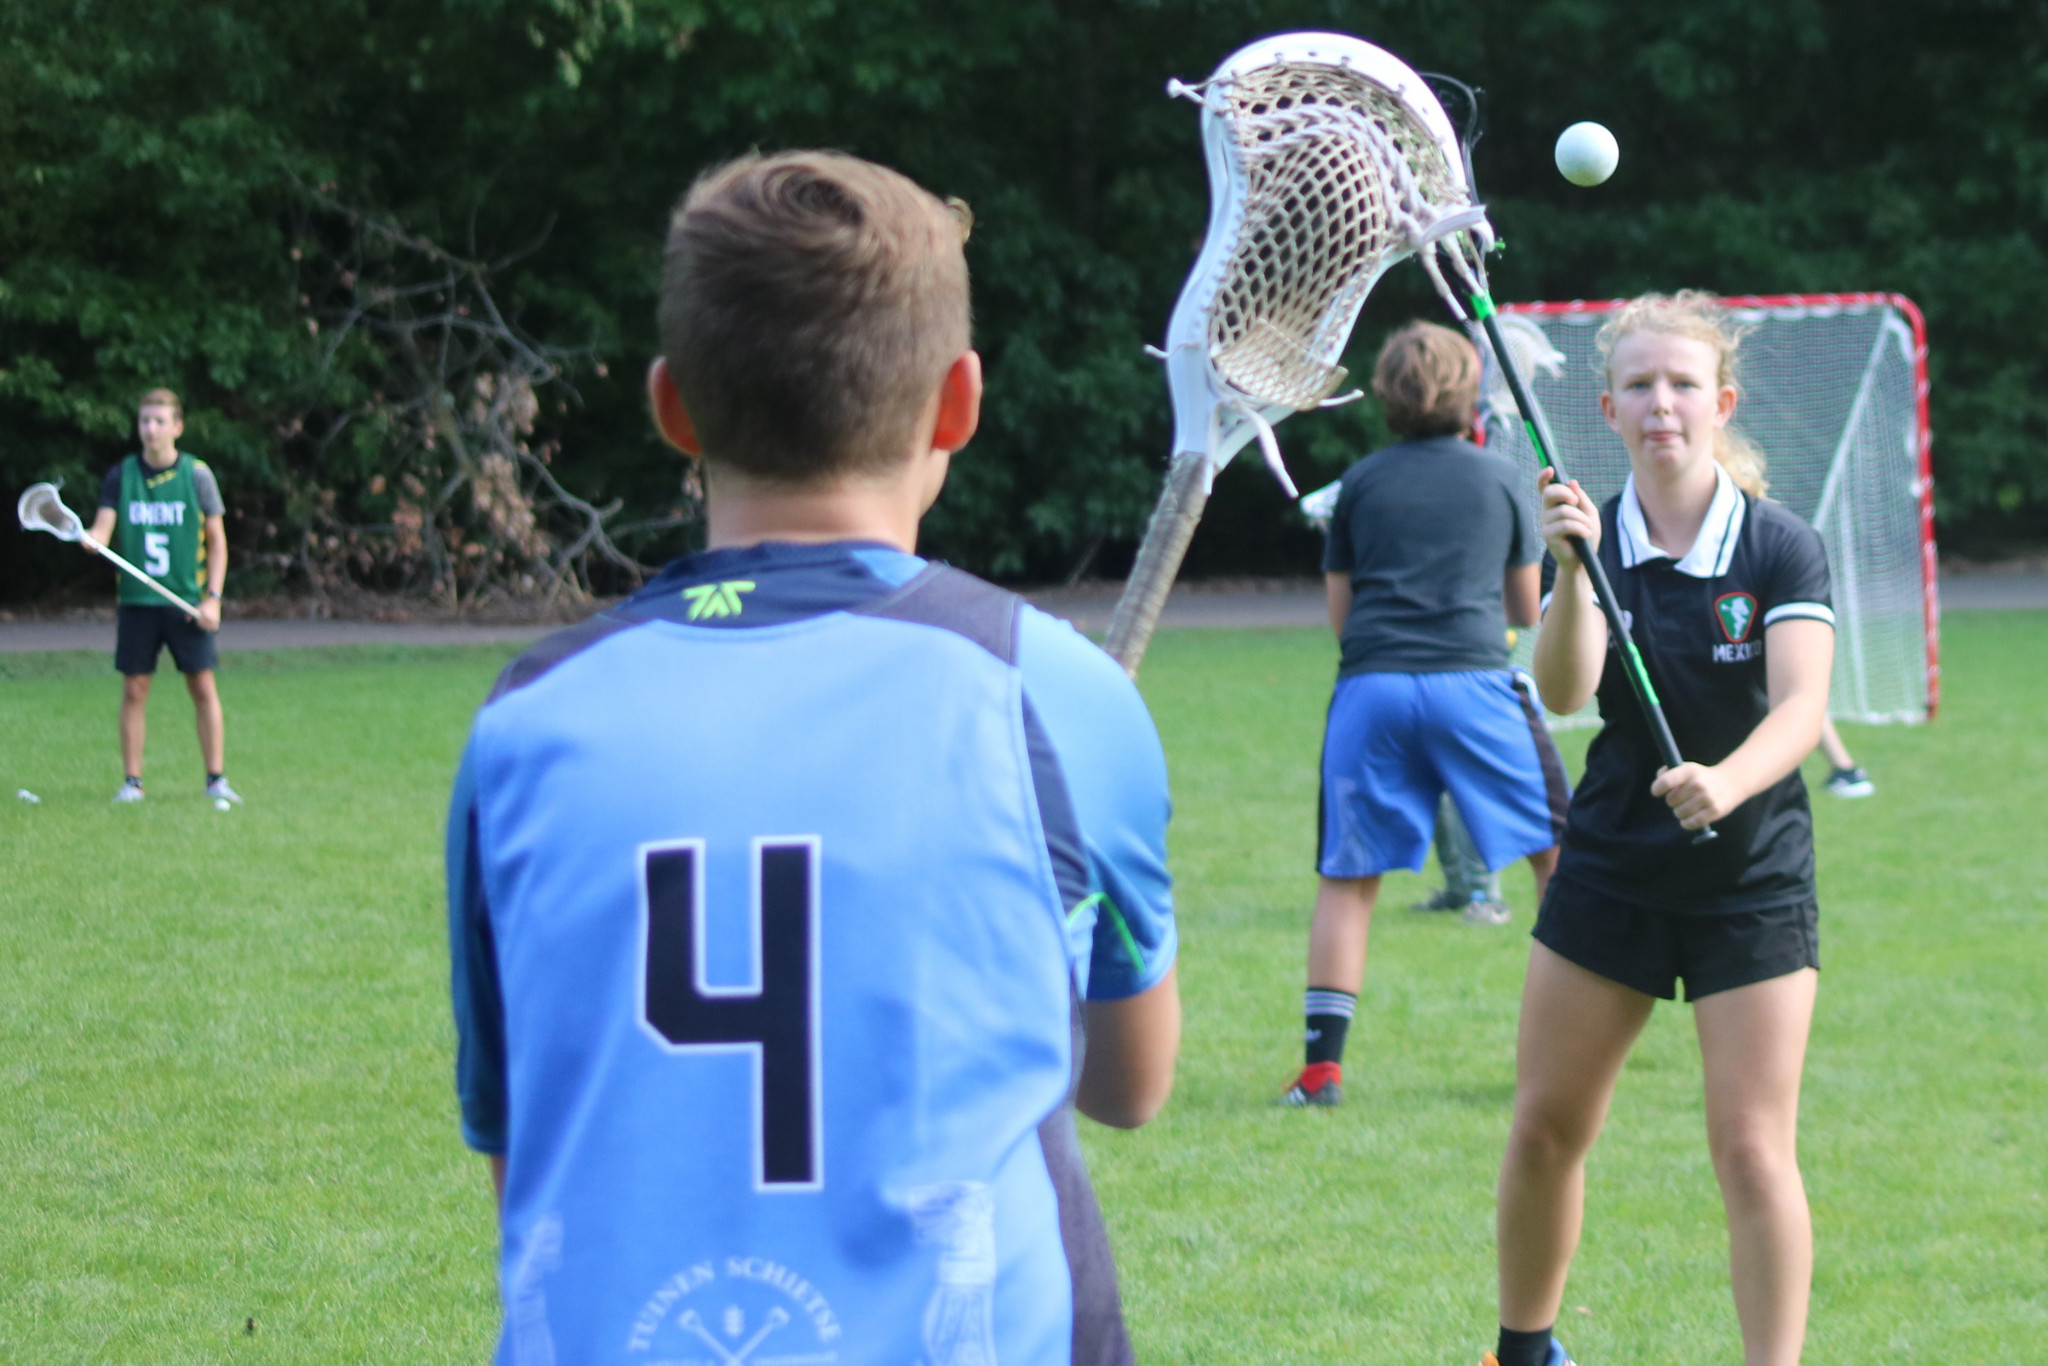 World Lacrosse gives 15 members COVID-19 relief grants